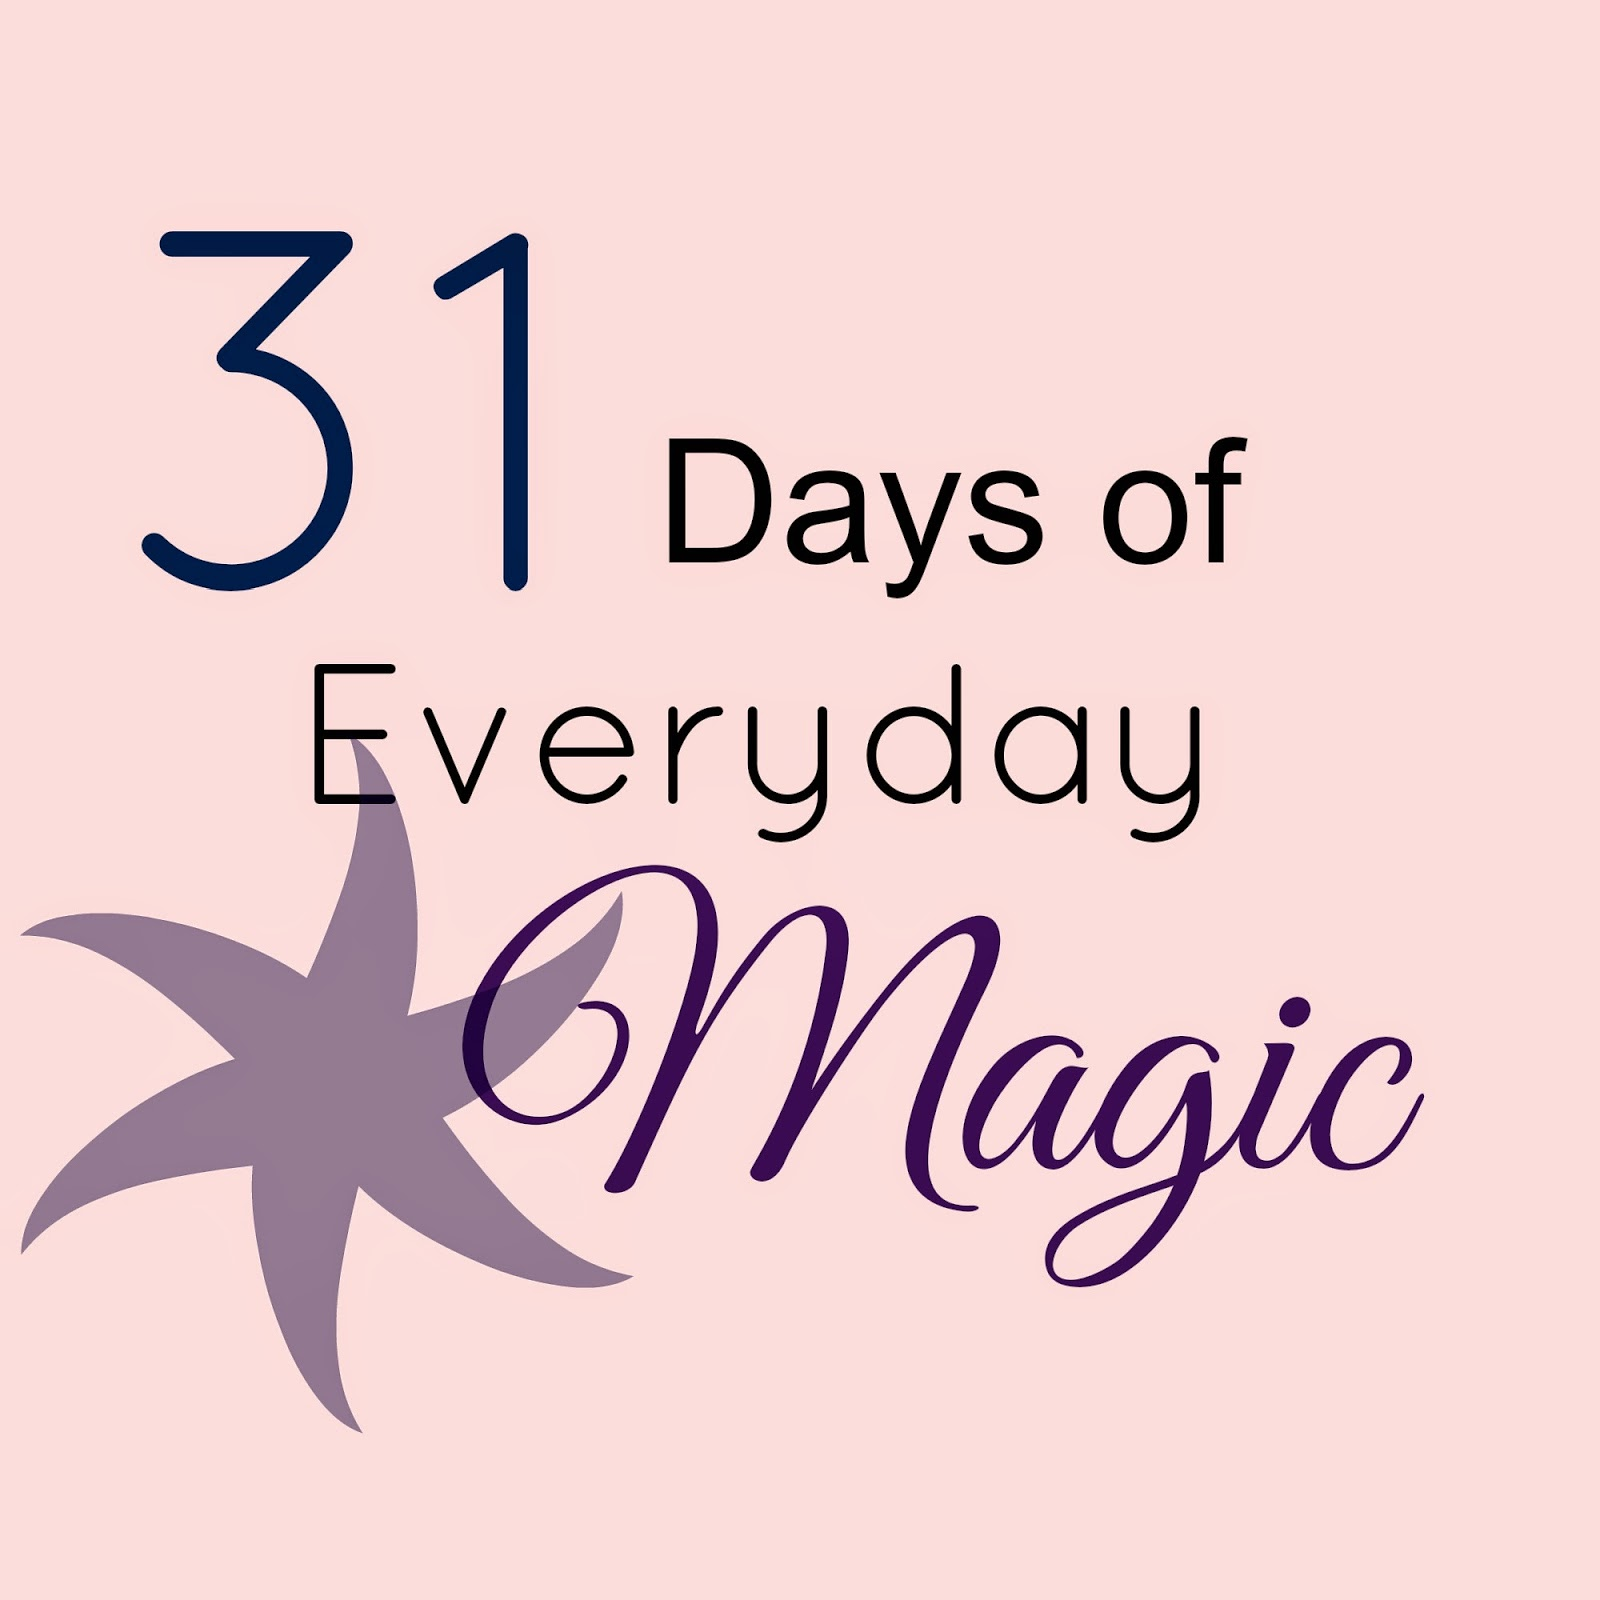 http://www.bestillaminute.com/p/31-days-of-everyday-magic.html